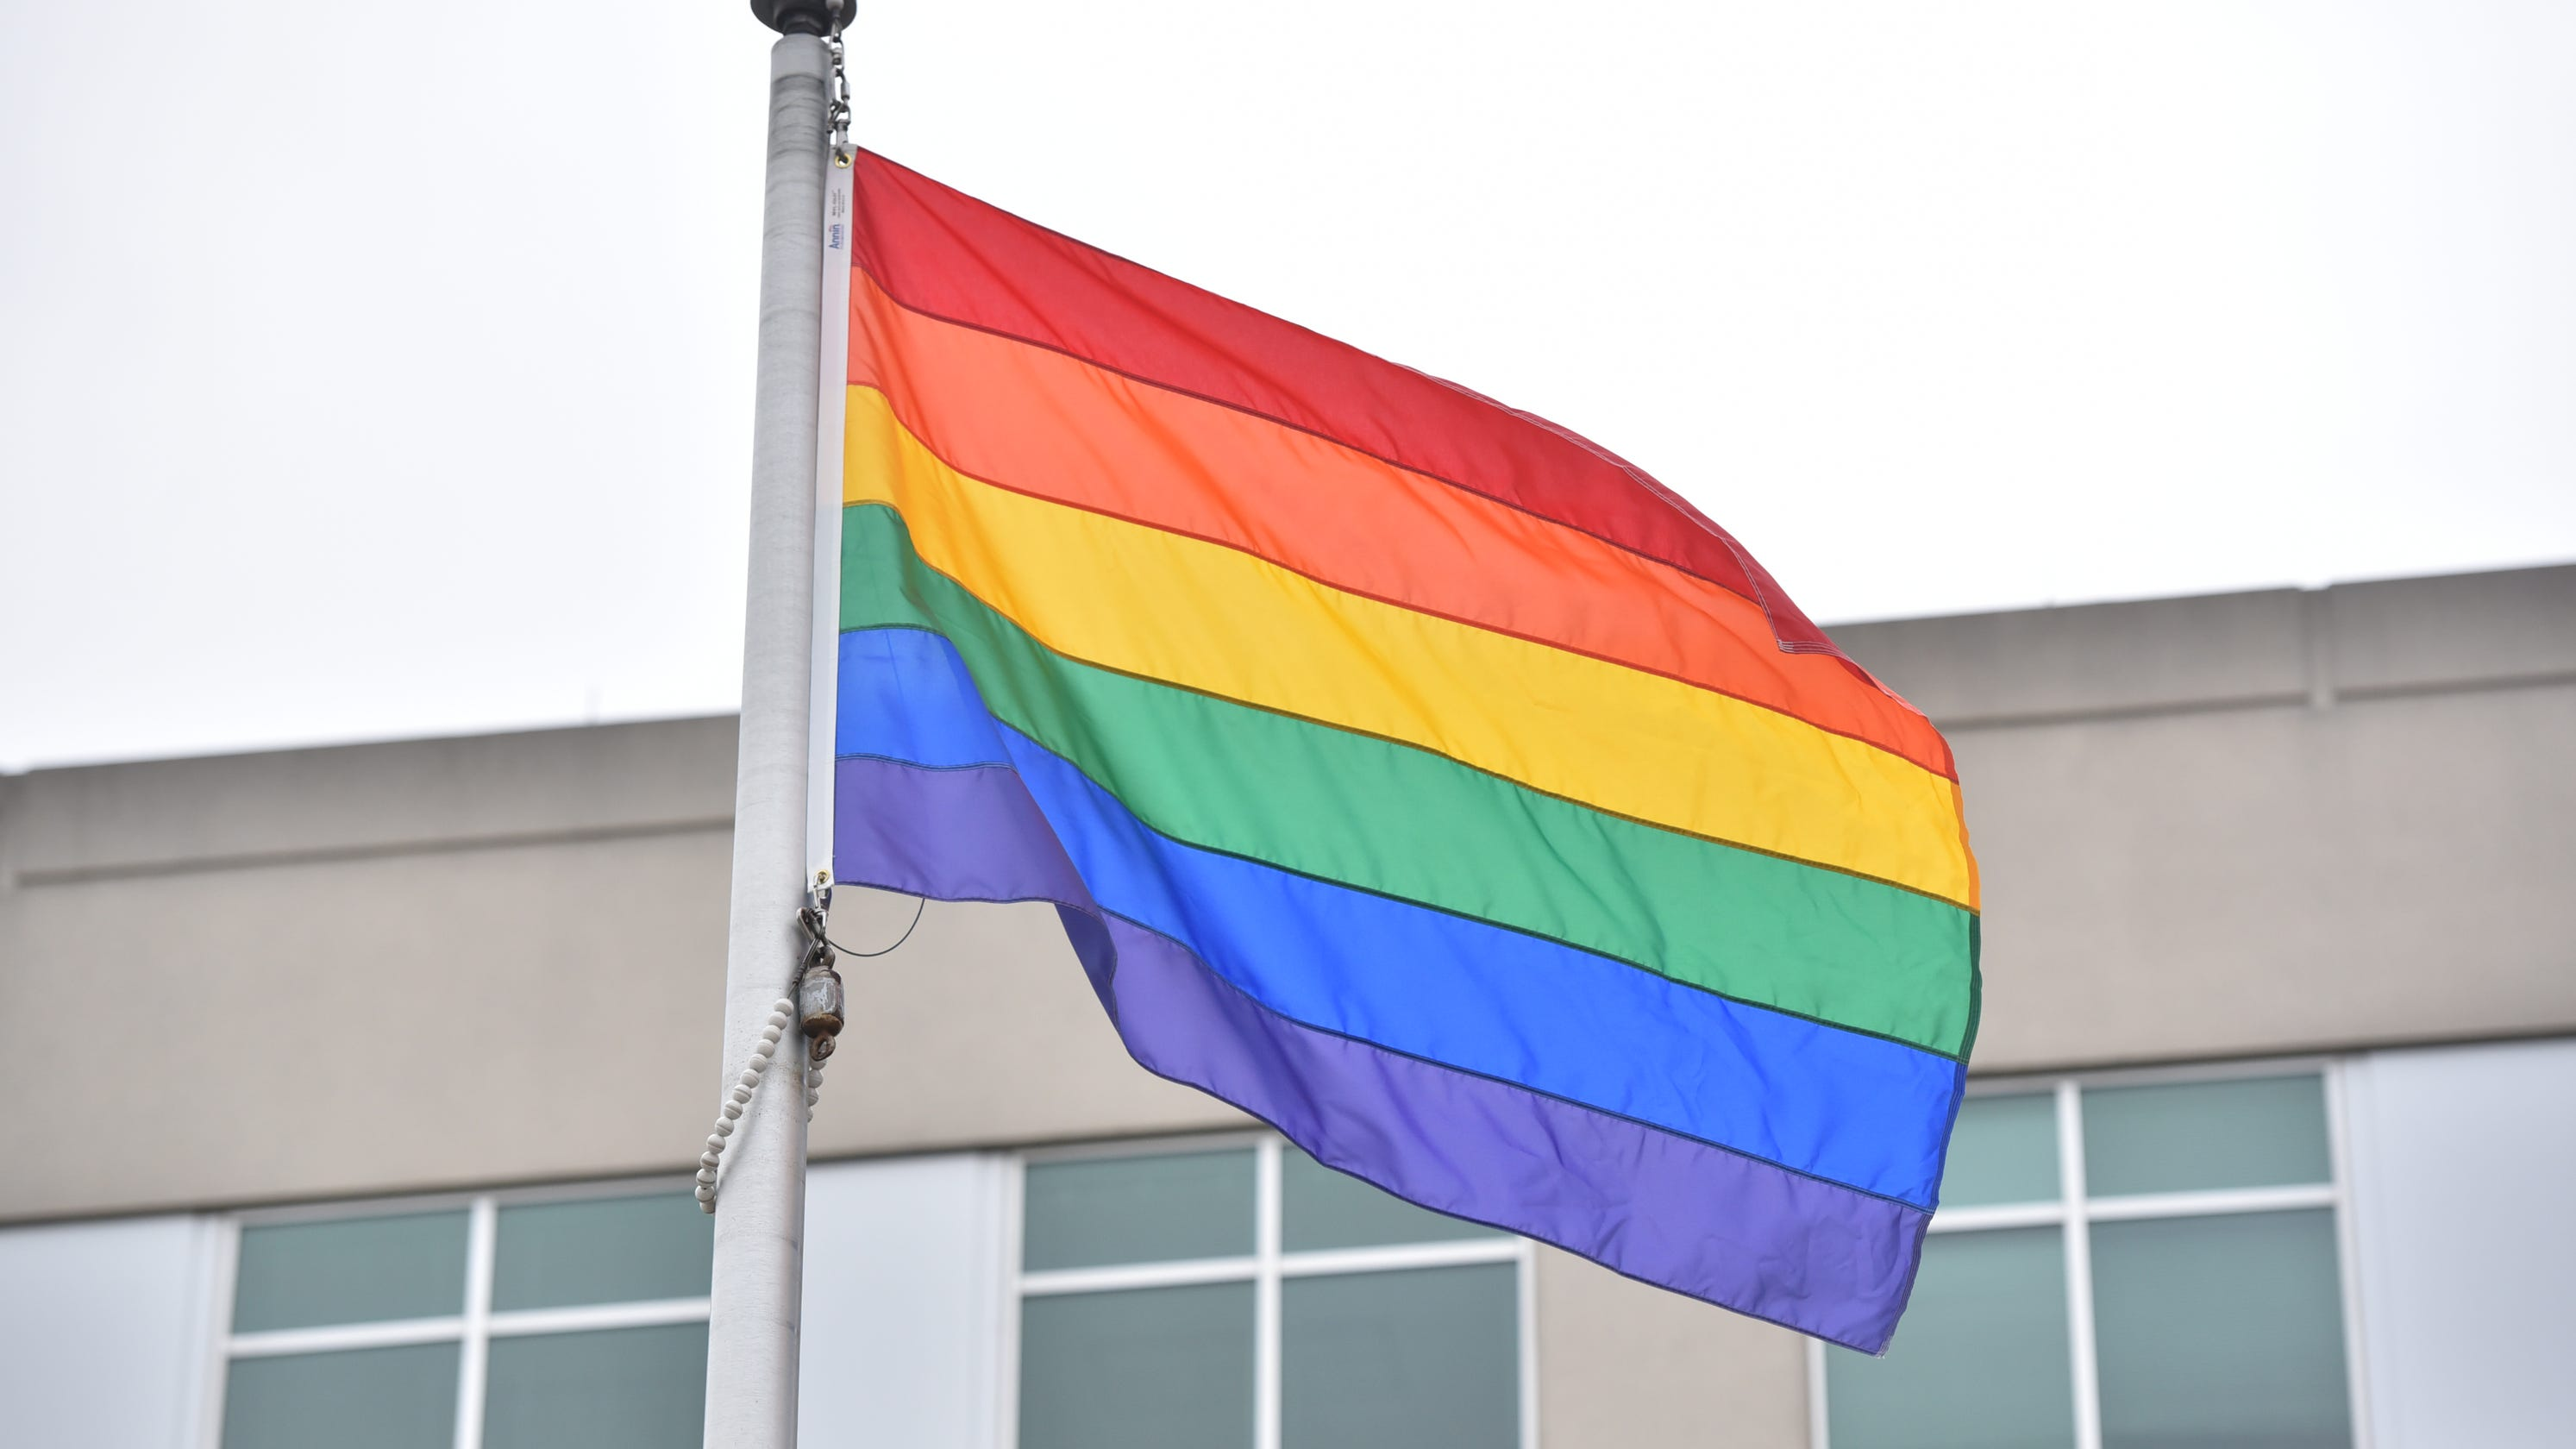 North Jersey towns that will fly LGBTQ pride flag